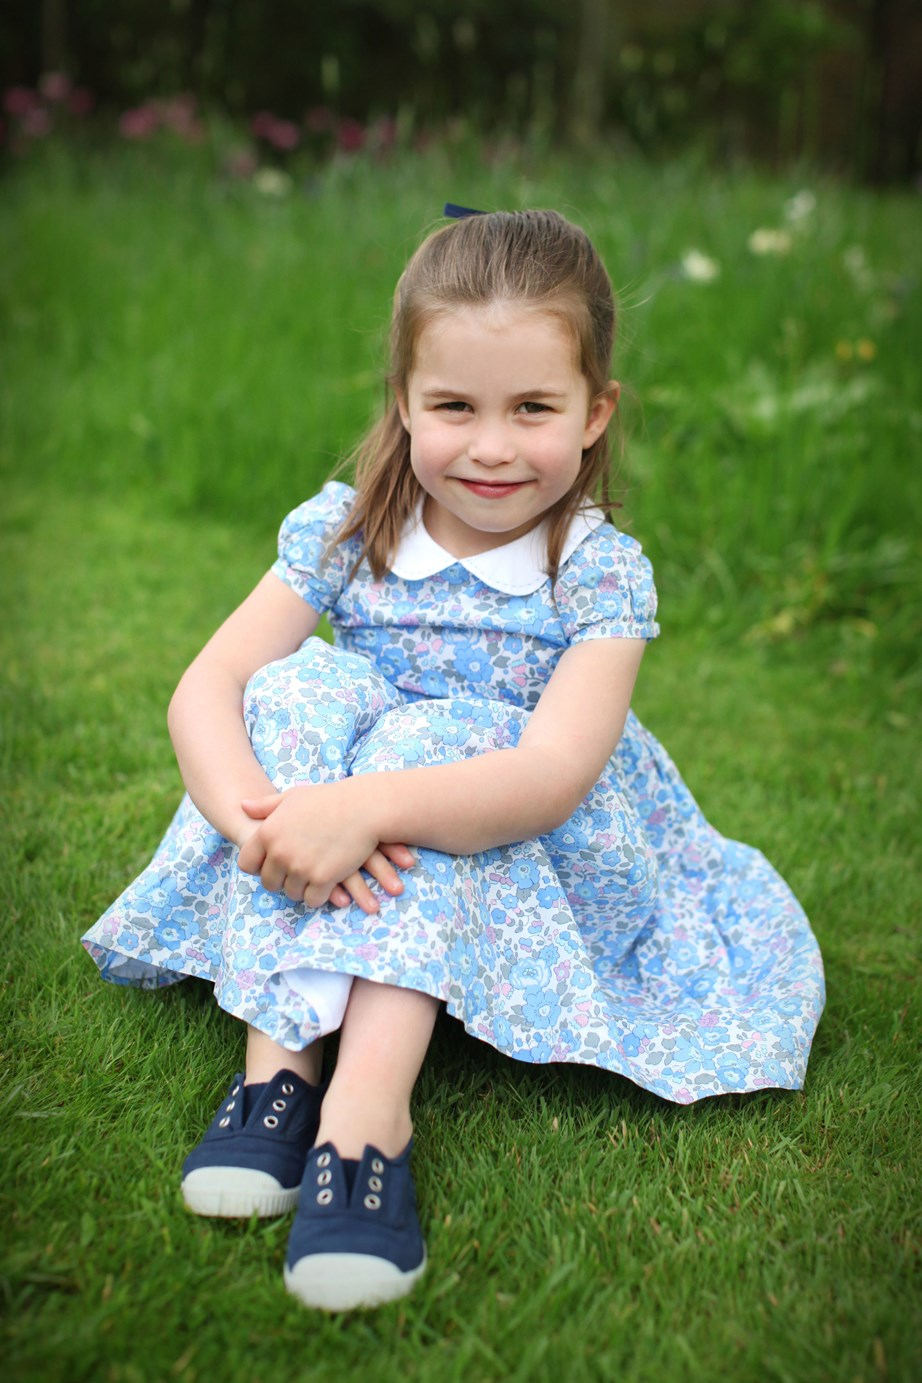 One of three of the beautiful photographs taken by Kate and shared to mark Princess Charlotte's 4th birthday in May. *(Image: Duchess of Cambridge via AP)*